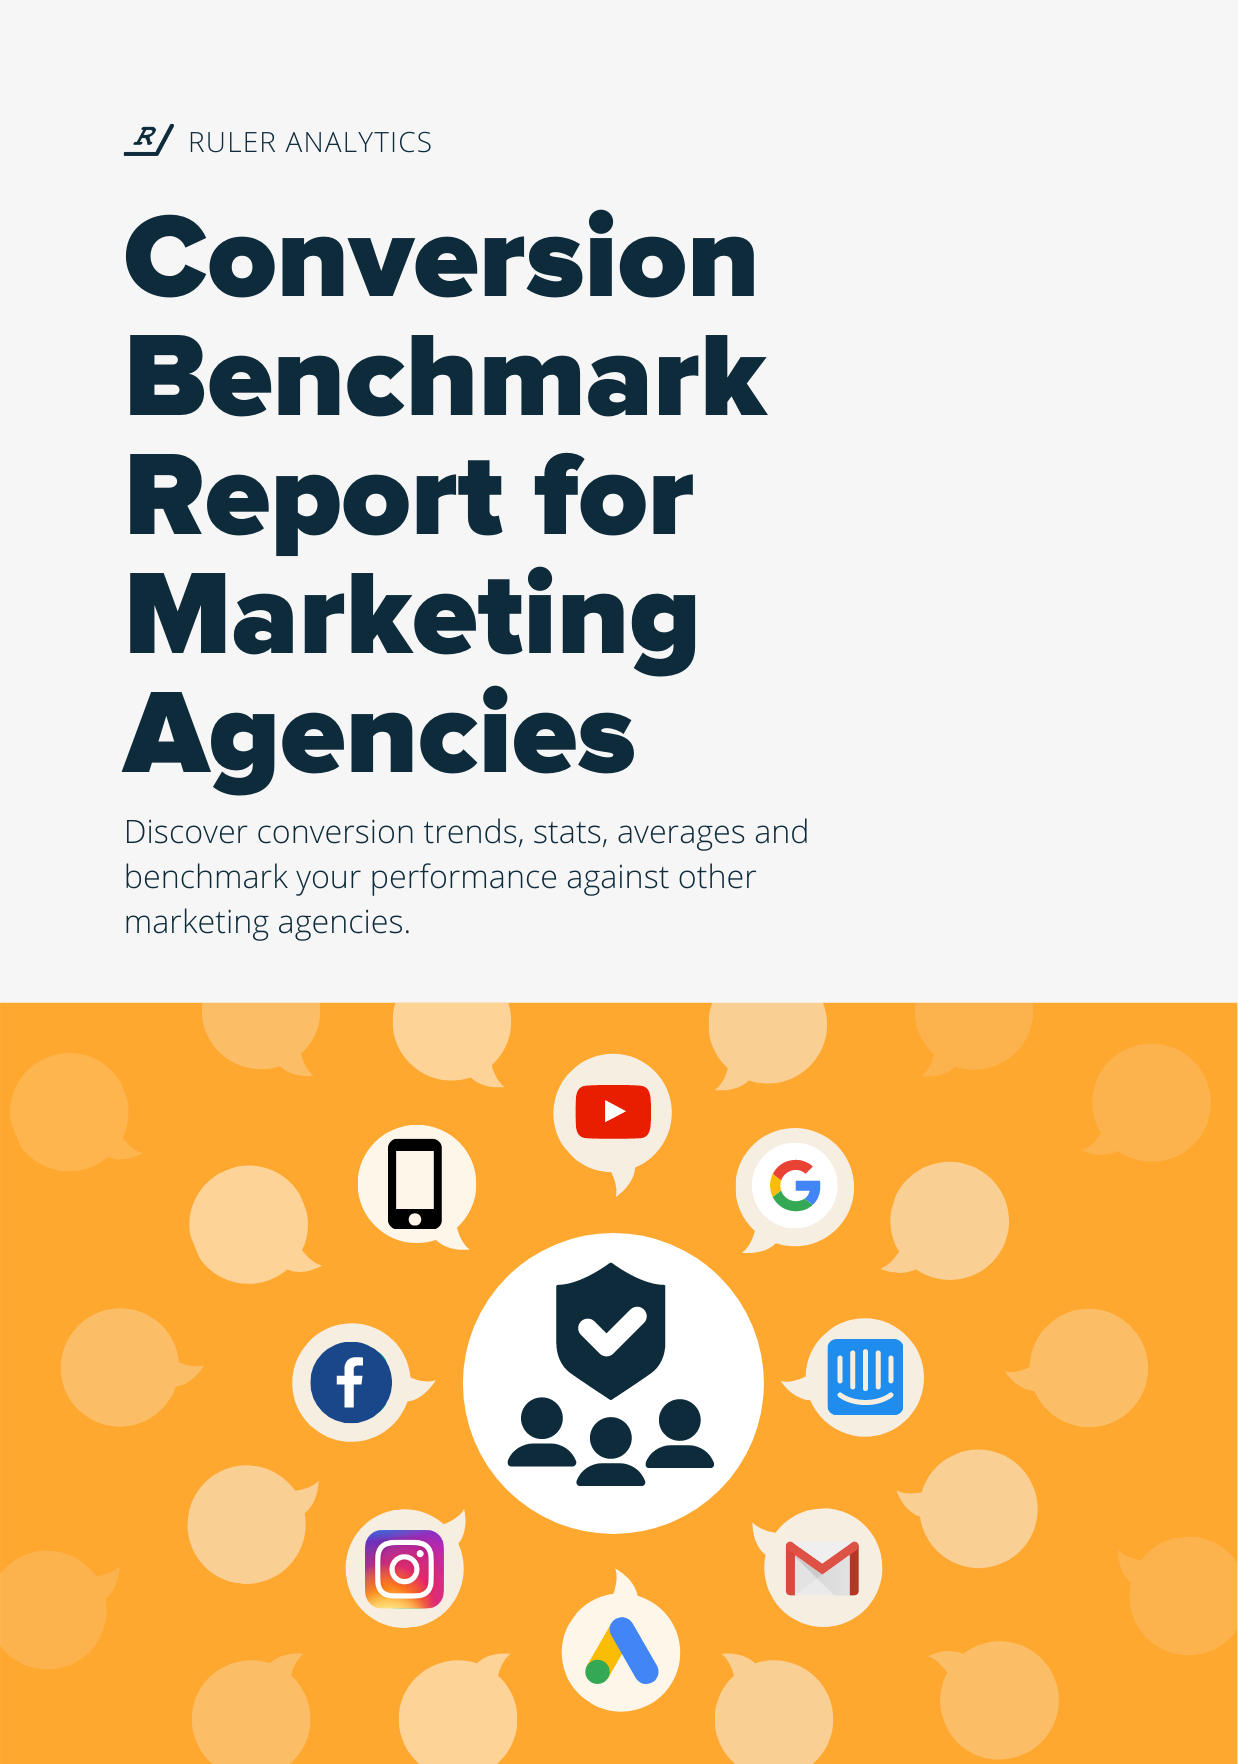 Conversion Benchmark Report for Marketing Agencies